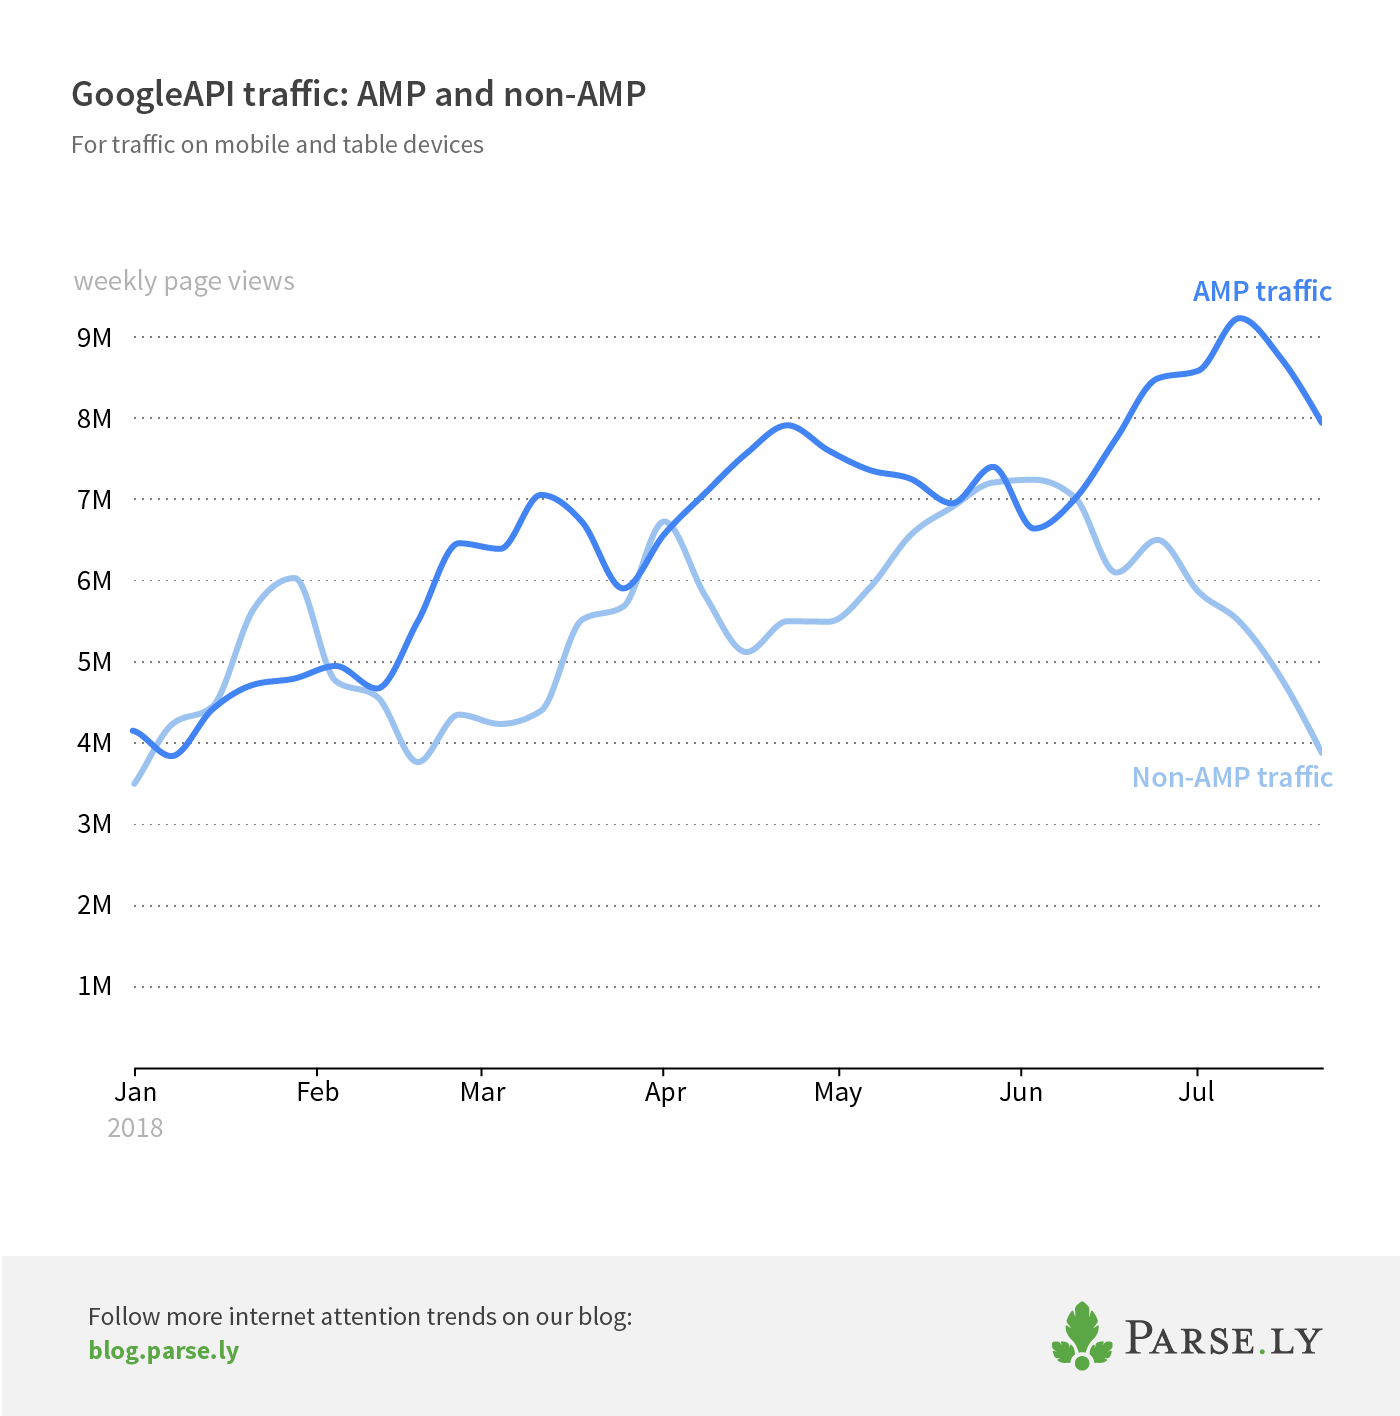 AMP and non-AMP Googleapi traffic